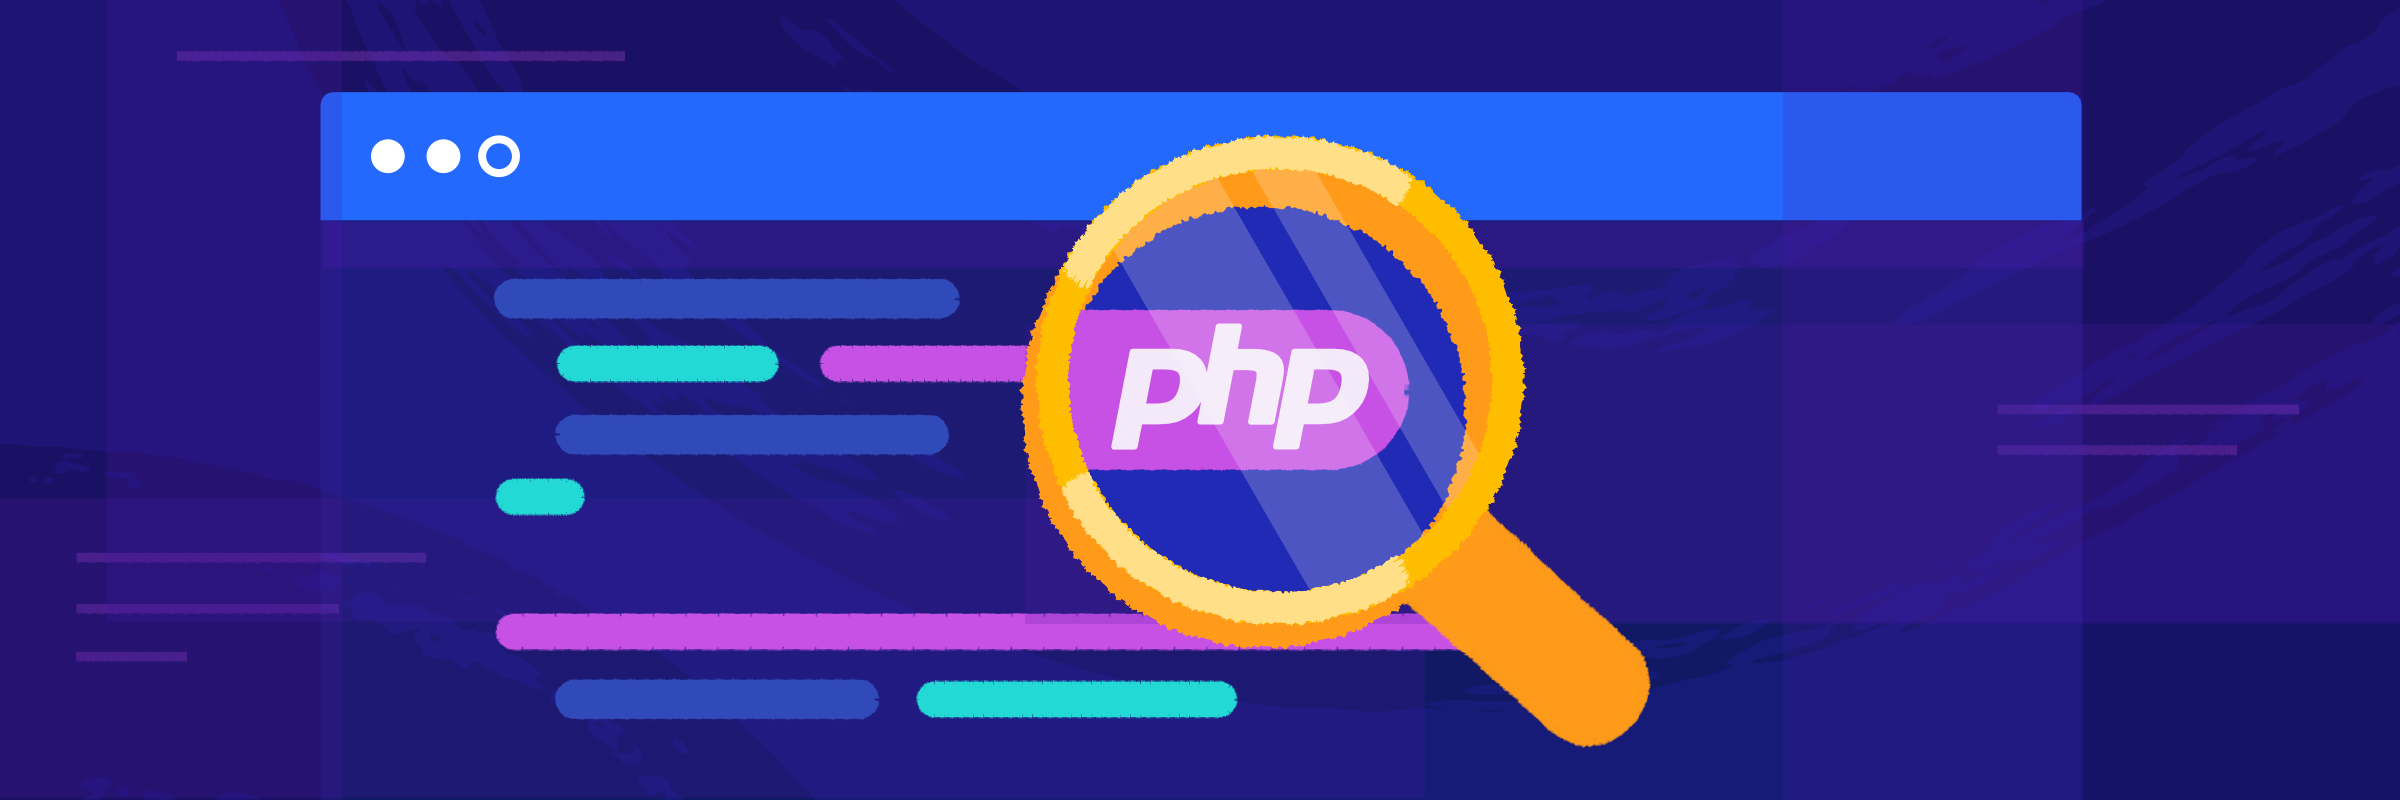 How to run Docker PHP integration tests